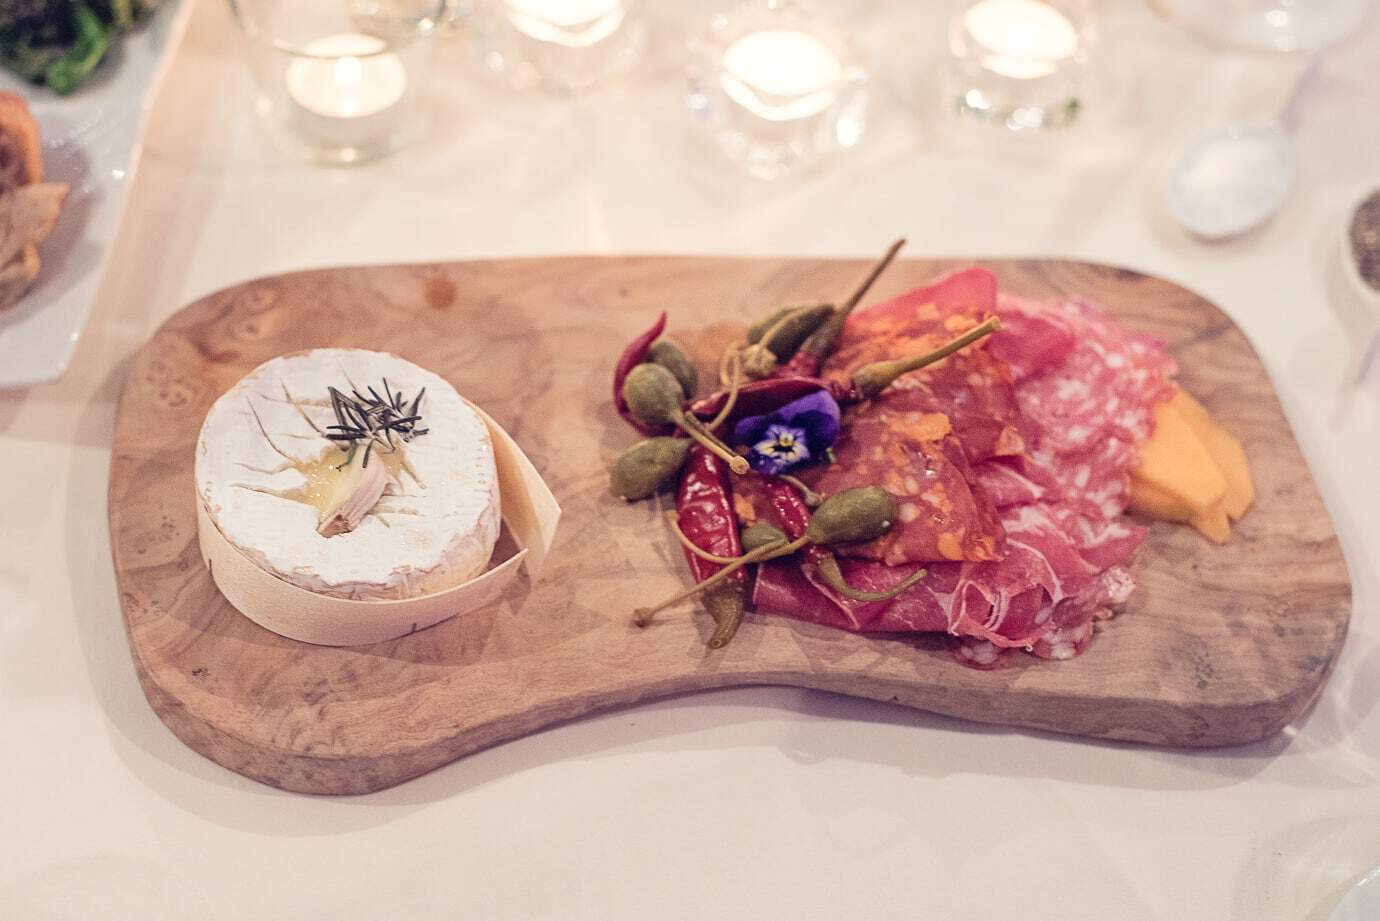 Roasted Camembert with caper berries and meats wedding starters at Plush Manor